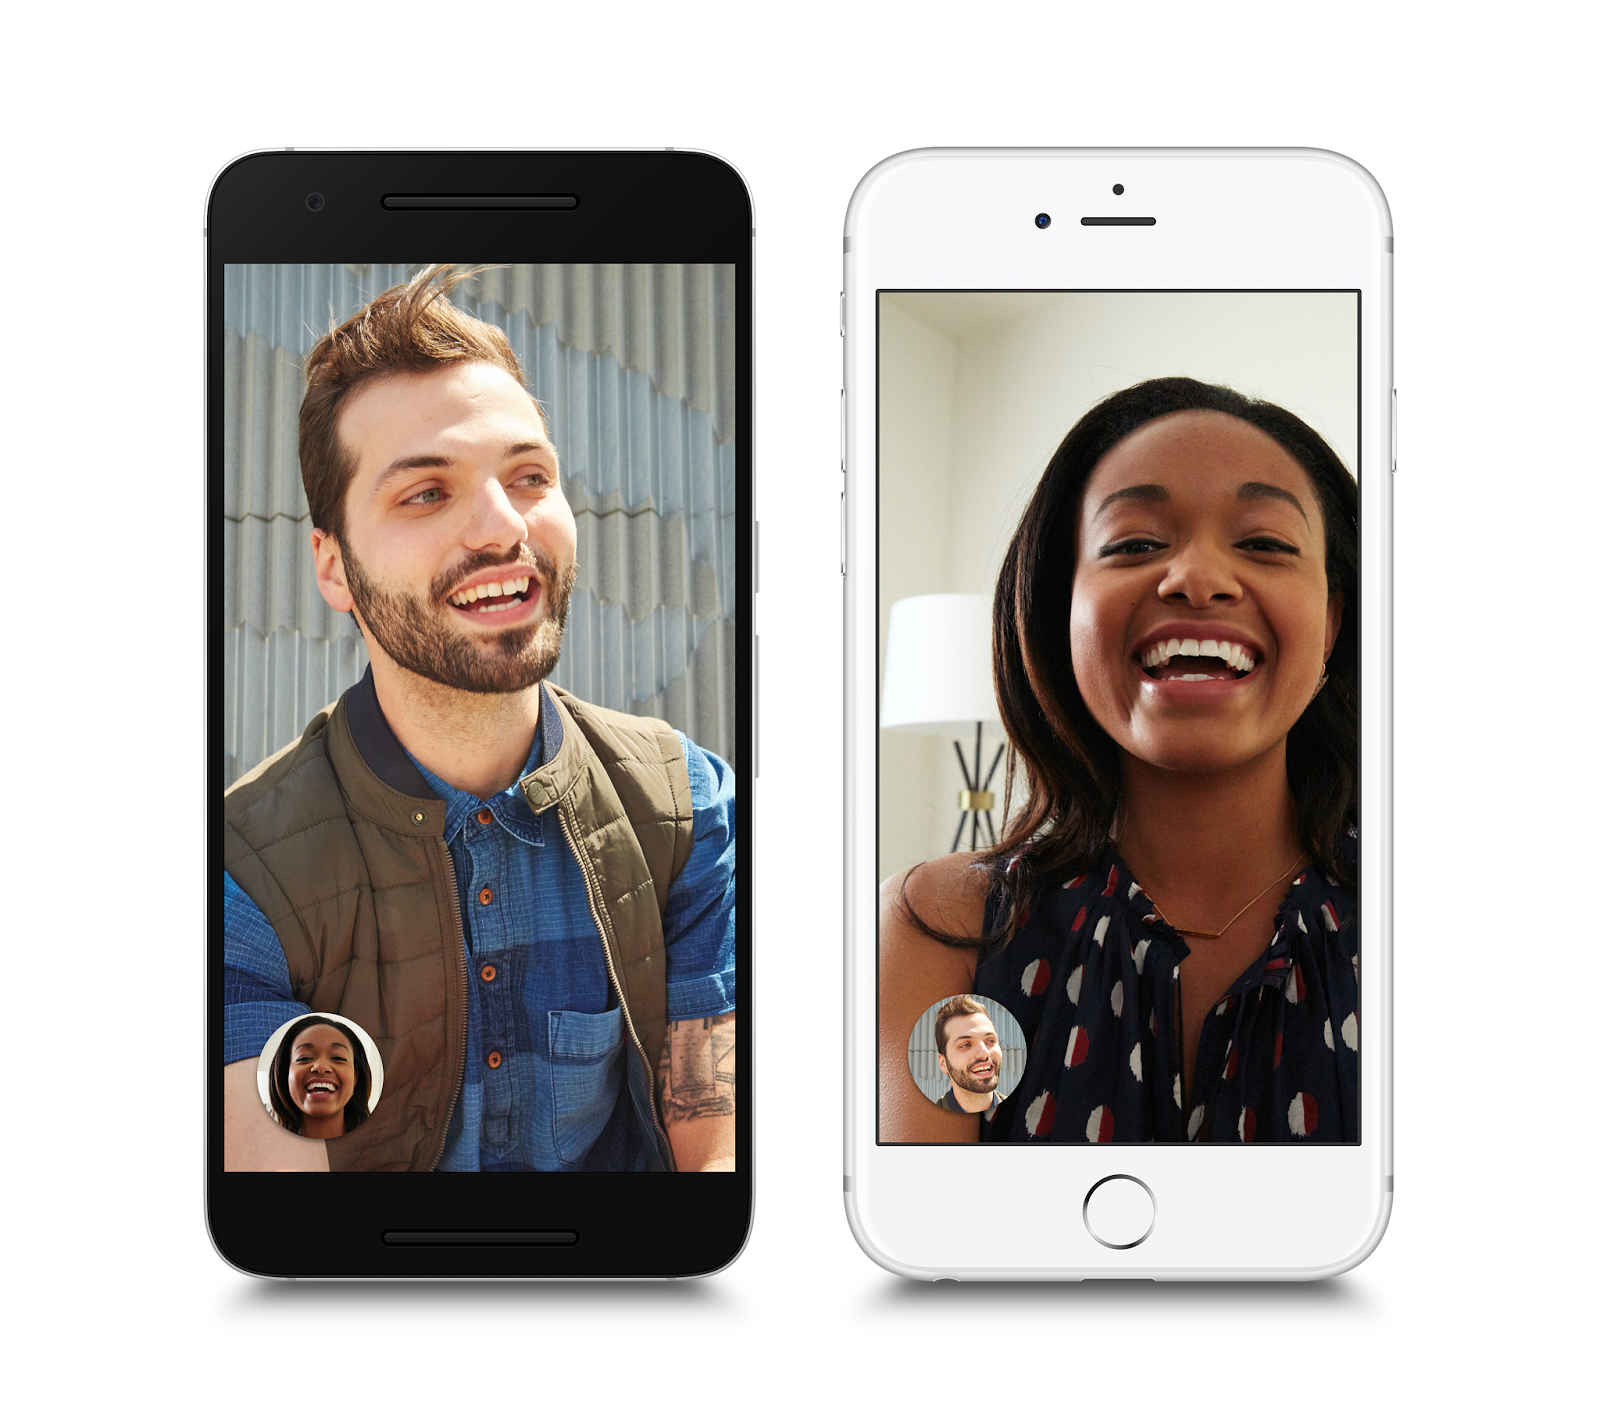 Best video calling smartphone Application ever by Google - Google Duo 1-to-1- Video Calling Application on Smartphone Devices